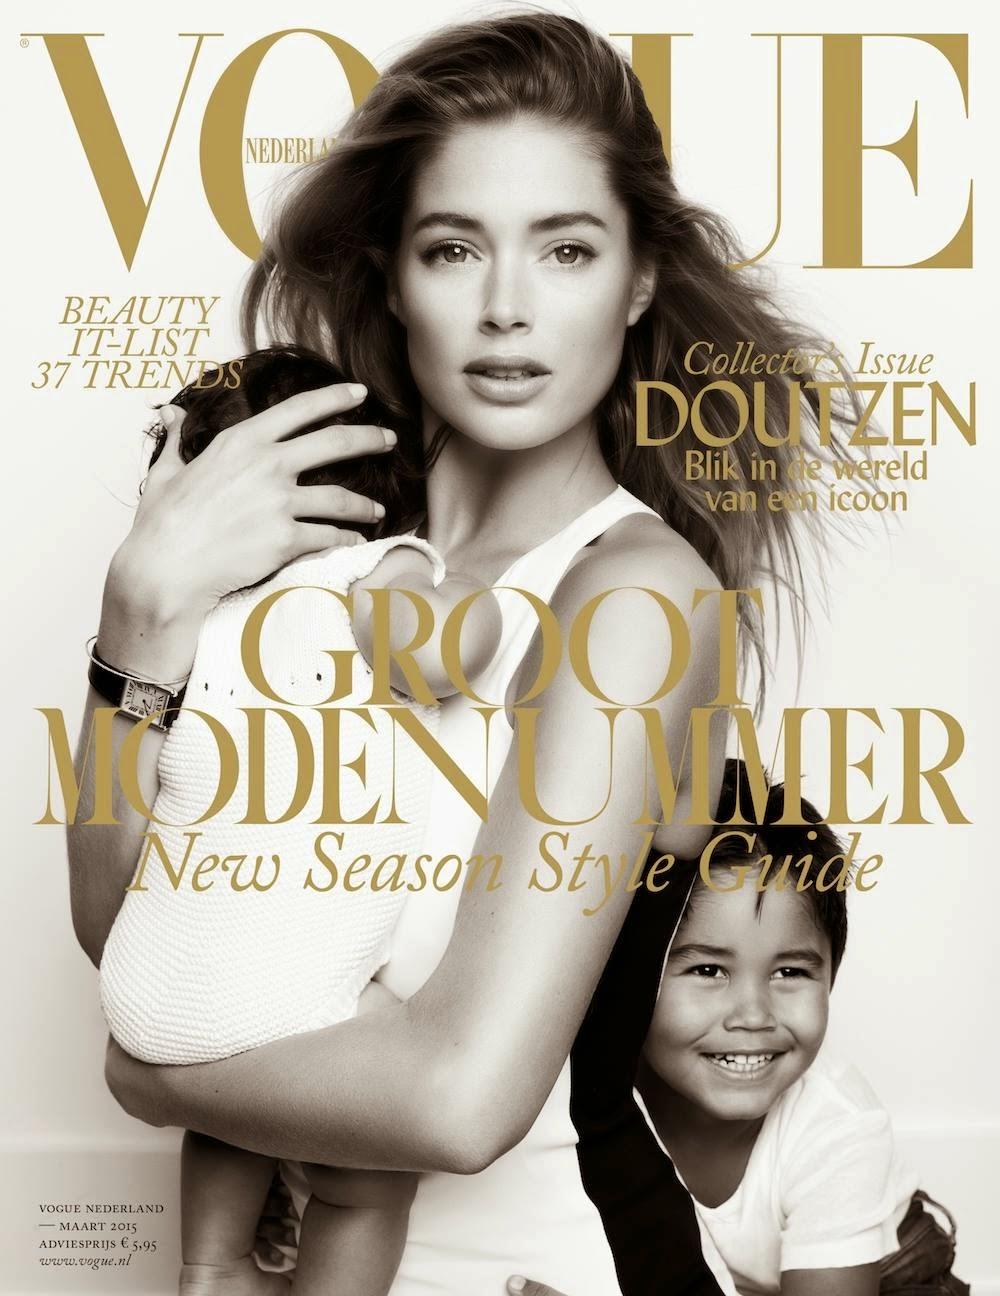 Model, Actress: Doutzen Kroes for Vogue Netherlands